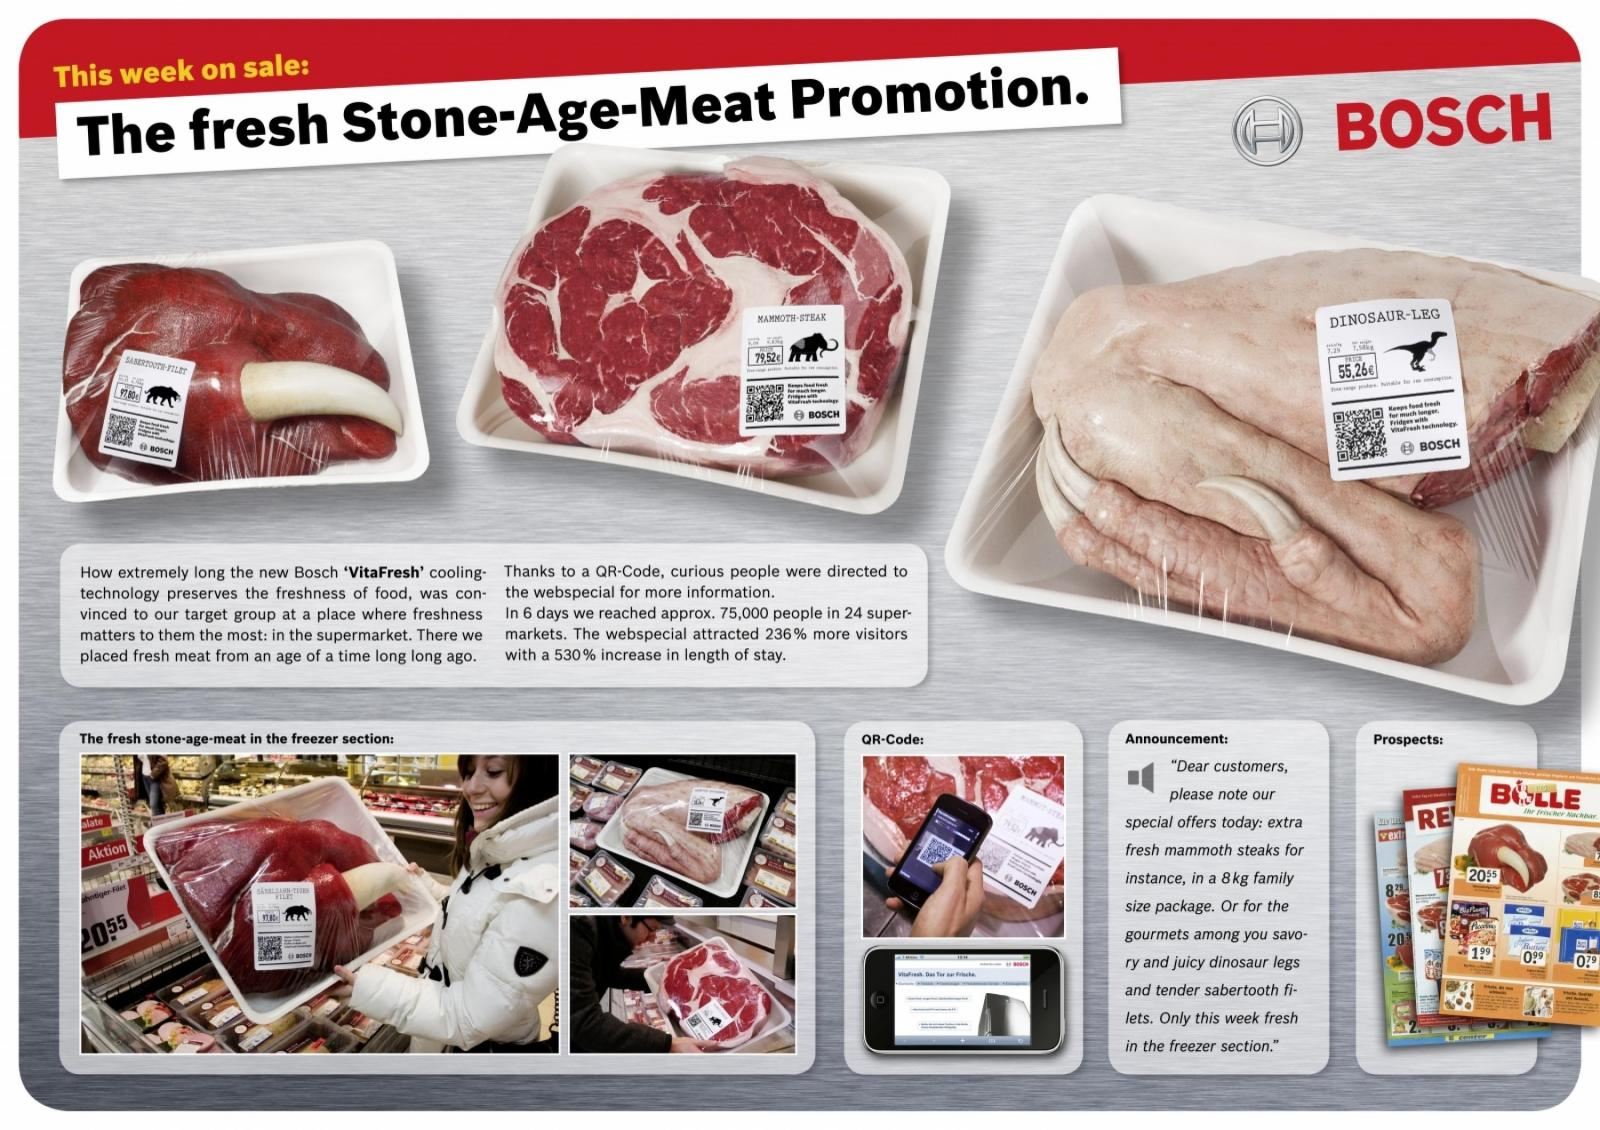 refrigerators-fresh-stone-age-meat-large-26340